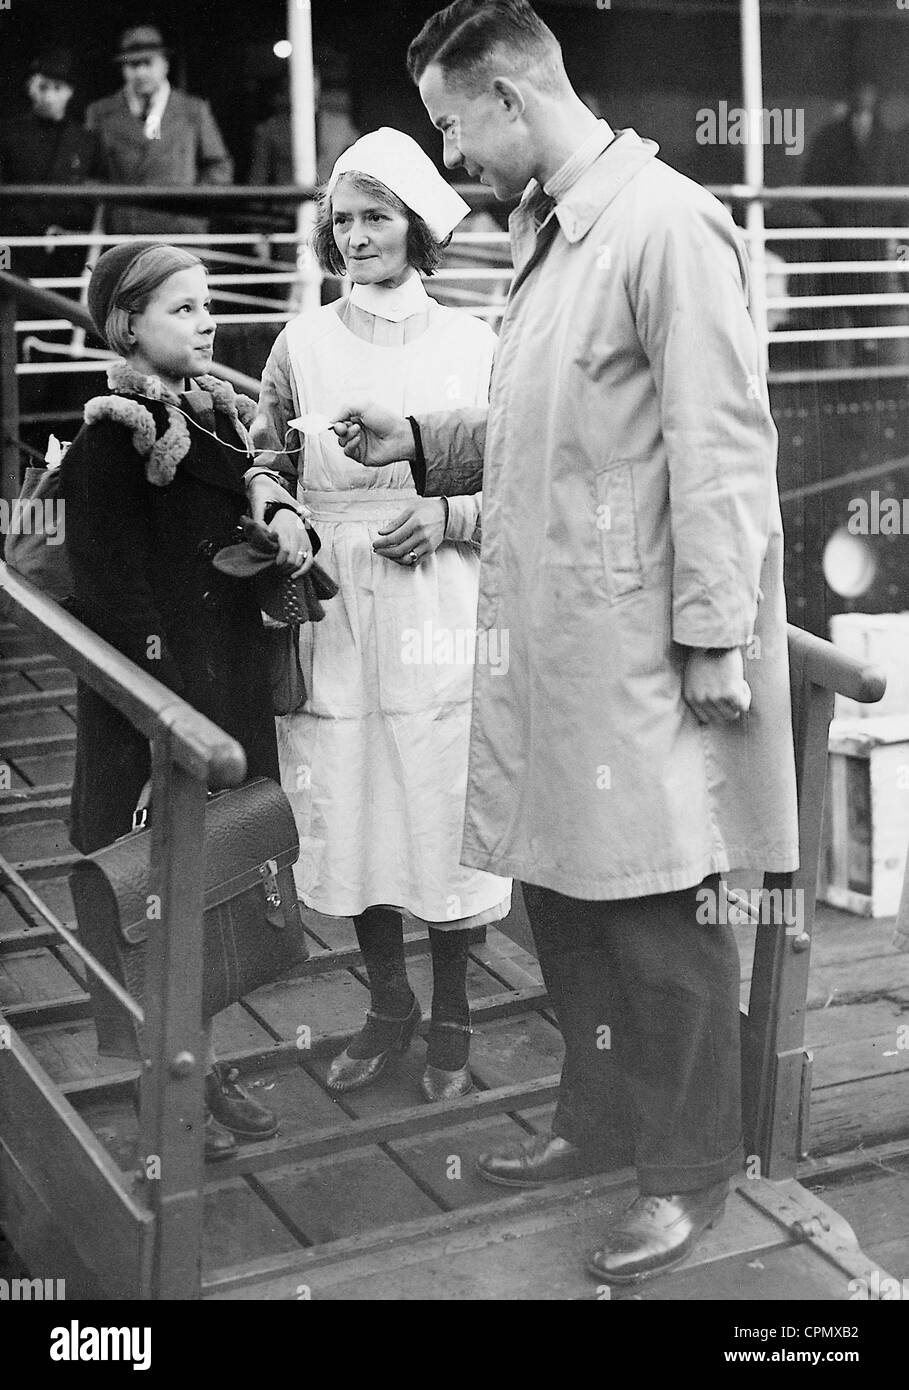 Jewish refugee child upon arrival in Harwich, 1938 - Stock Image